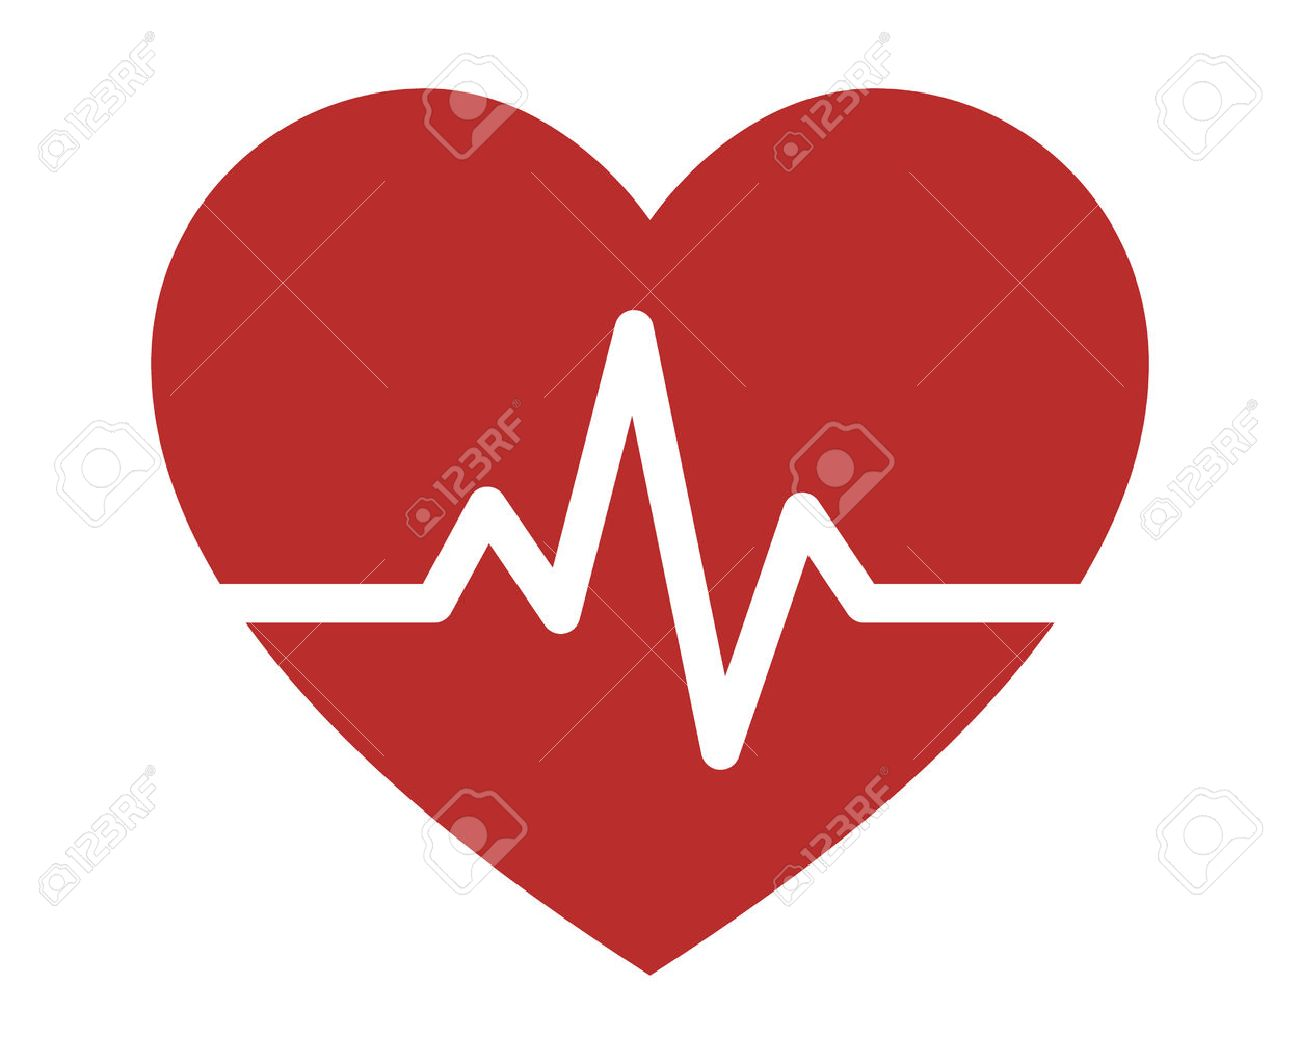 Heartbeat / heart beat pulse flat icon for medical apps and websites - 55005065